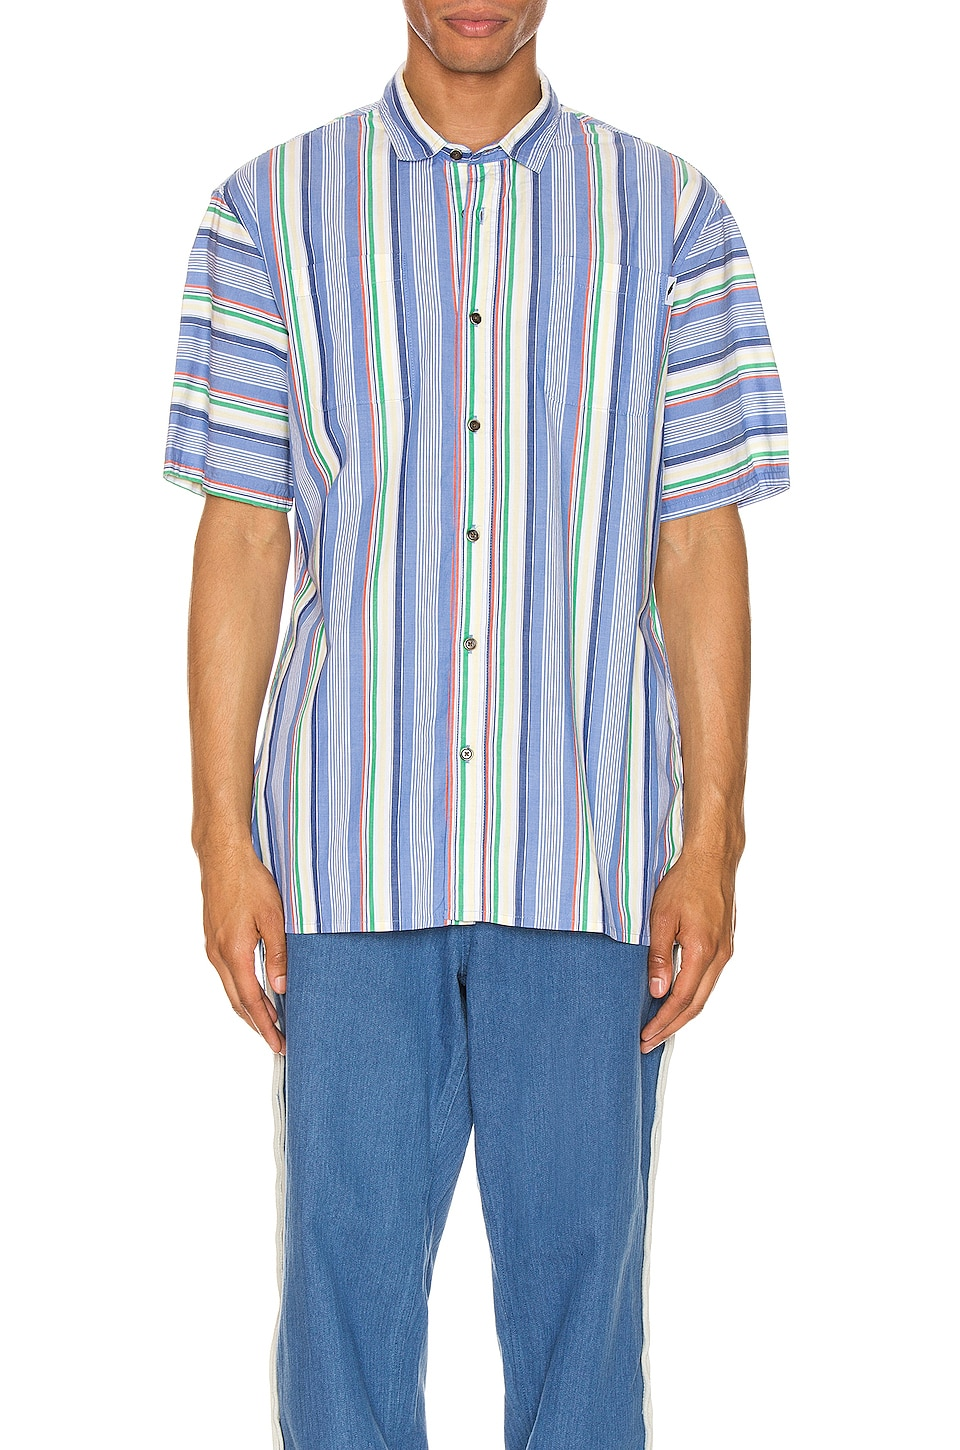 Publish Button Up in Blue